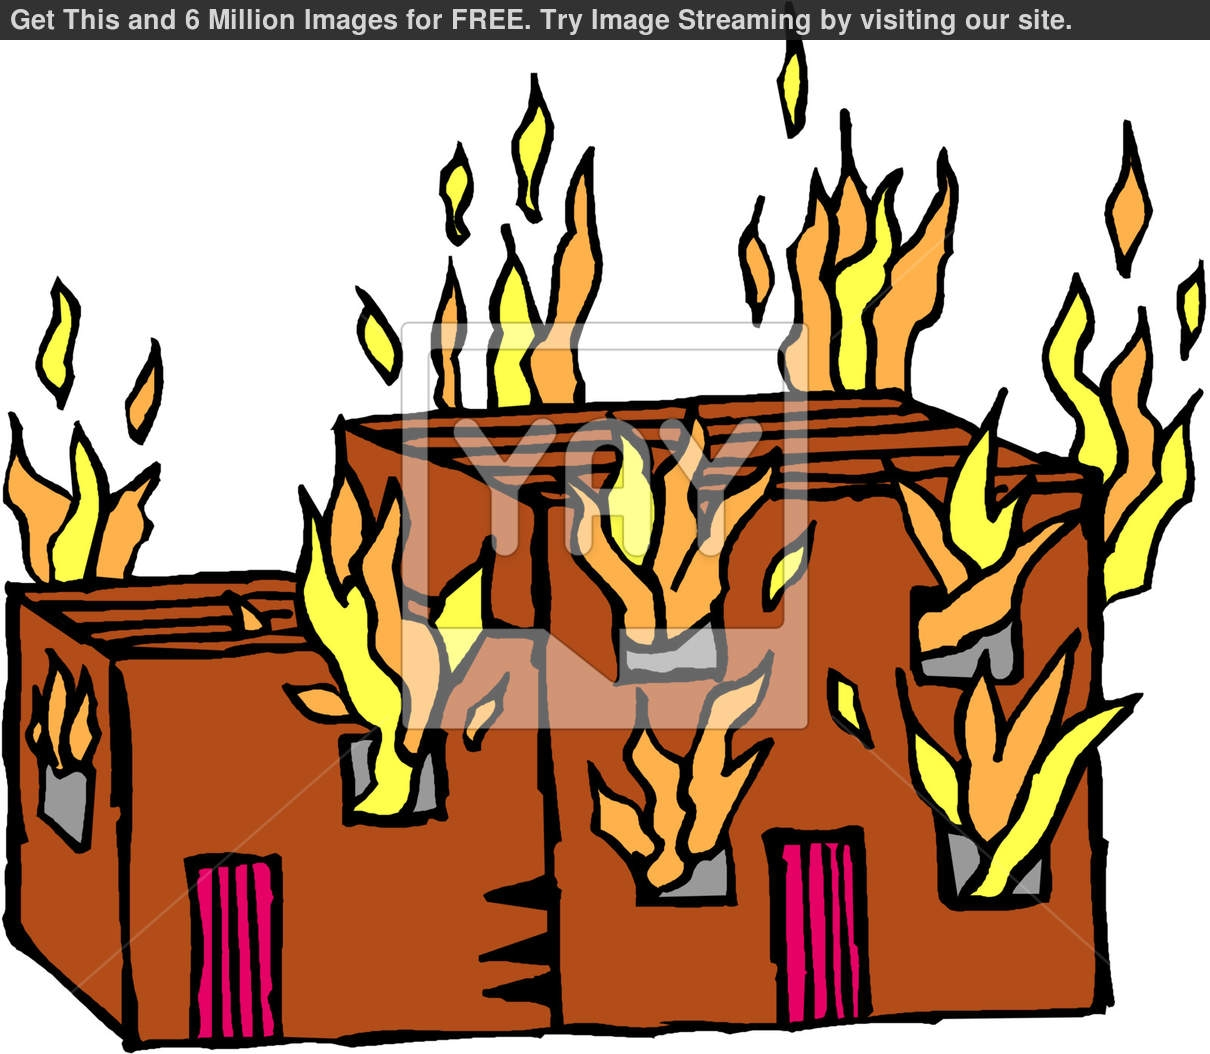 Hotel clipart on fire On com On Building Clipart